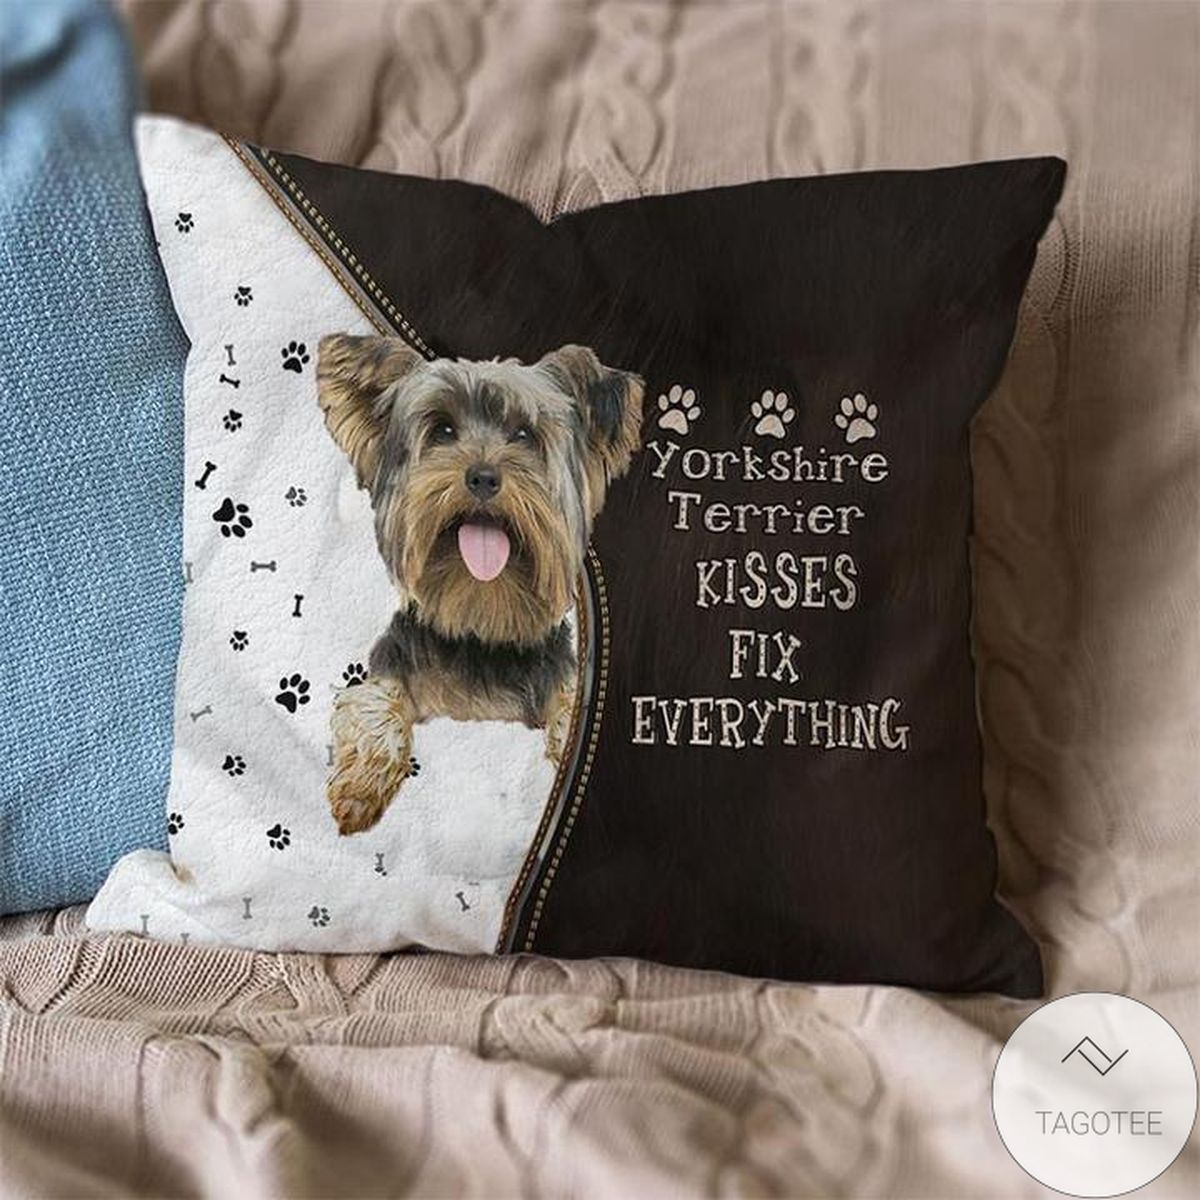 Perfect Yorkshire Terrier Kisses Fix Everything Pillowcase